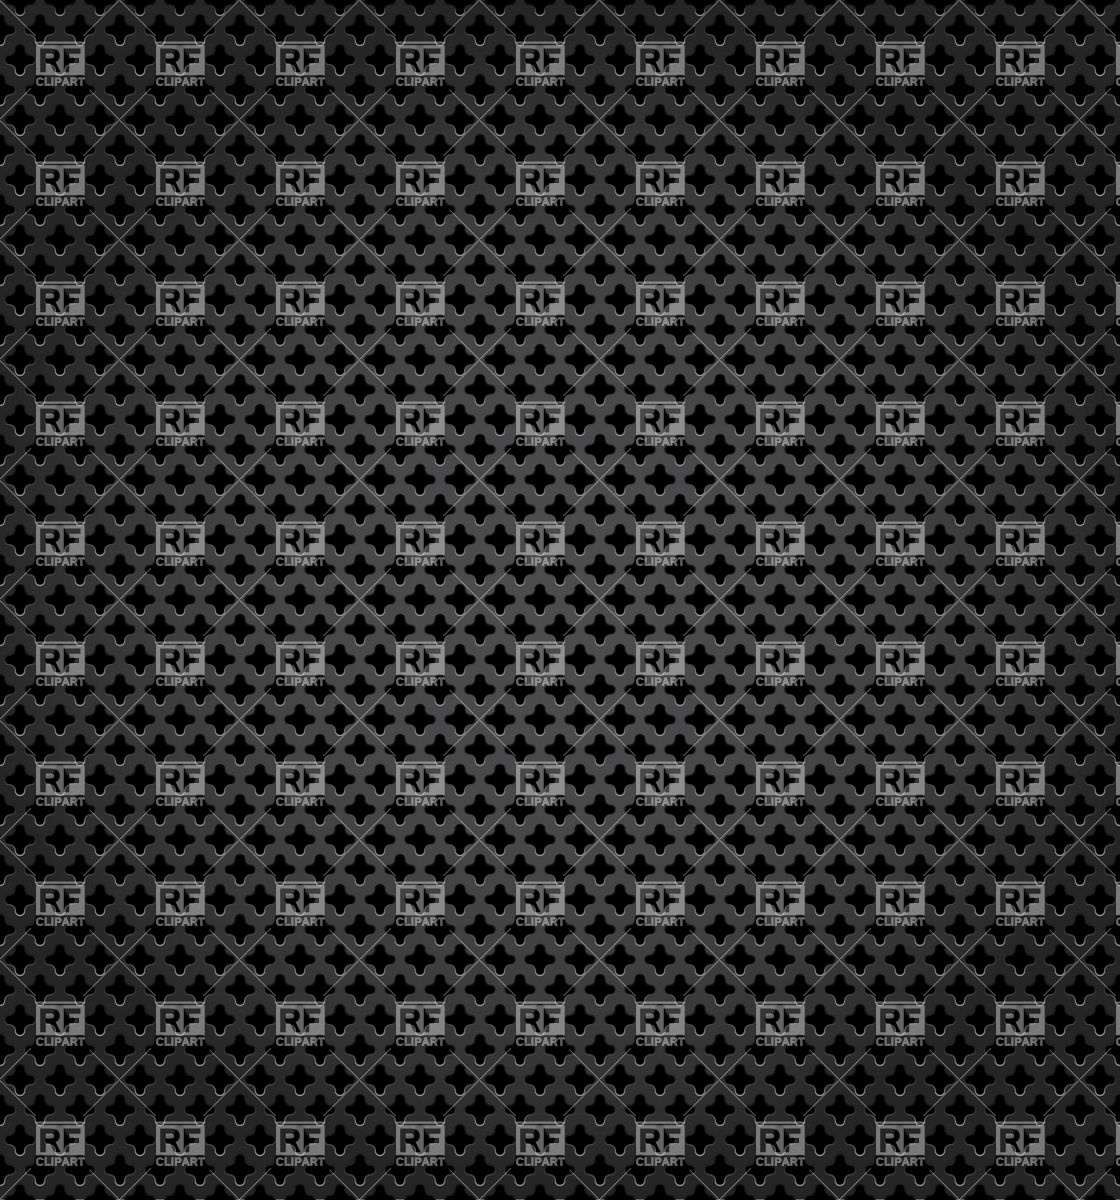 Metal black perforated surface Vector Image #18510.